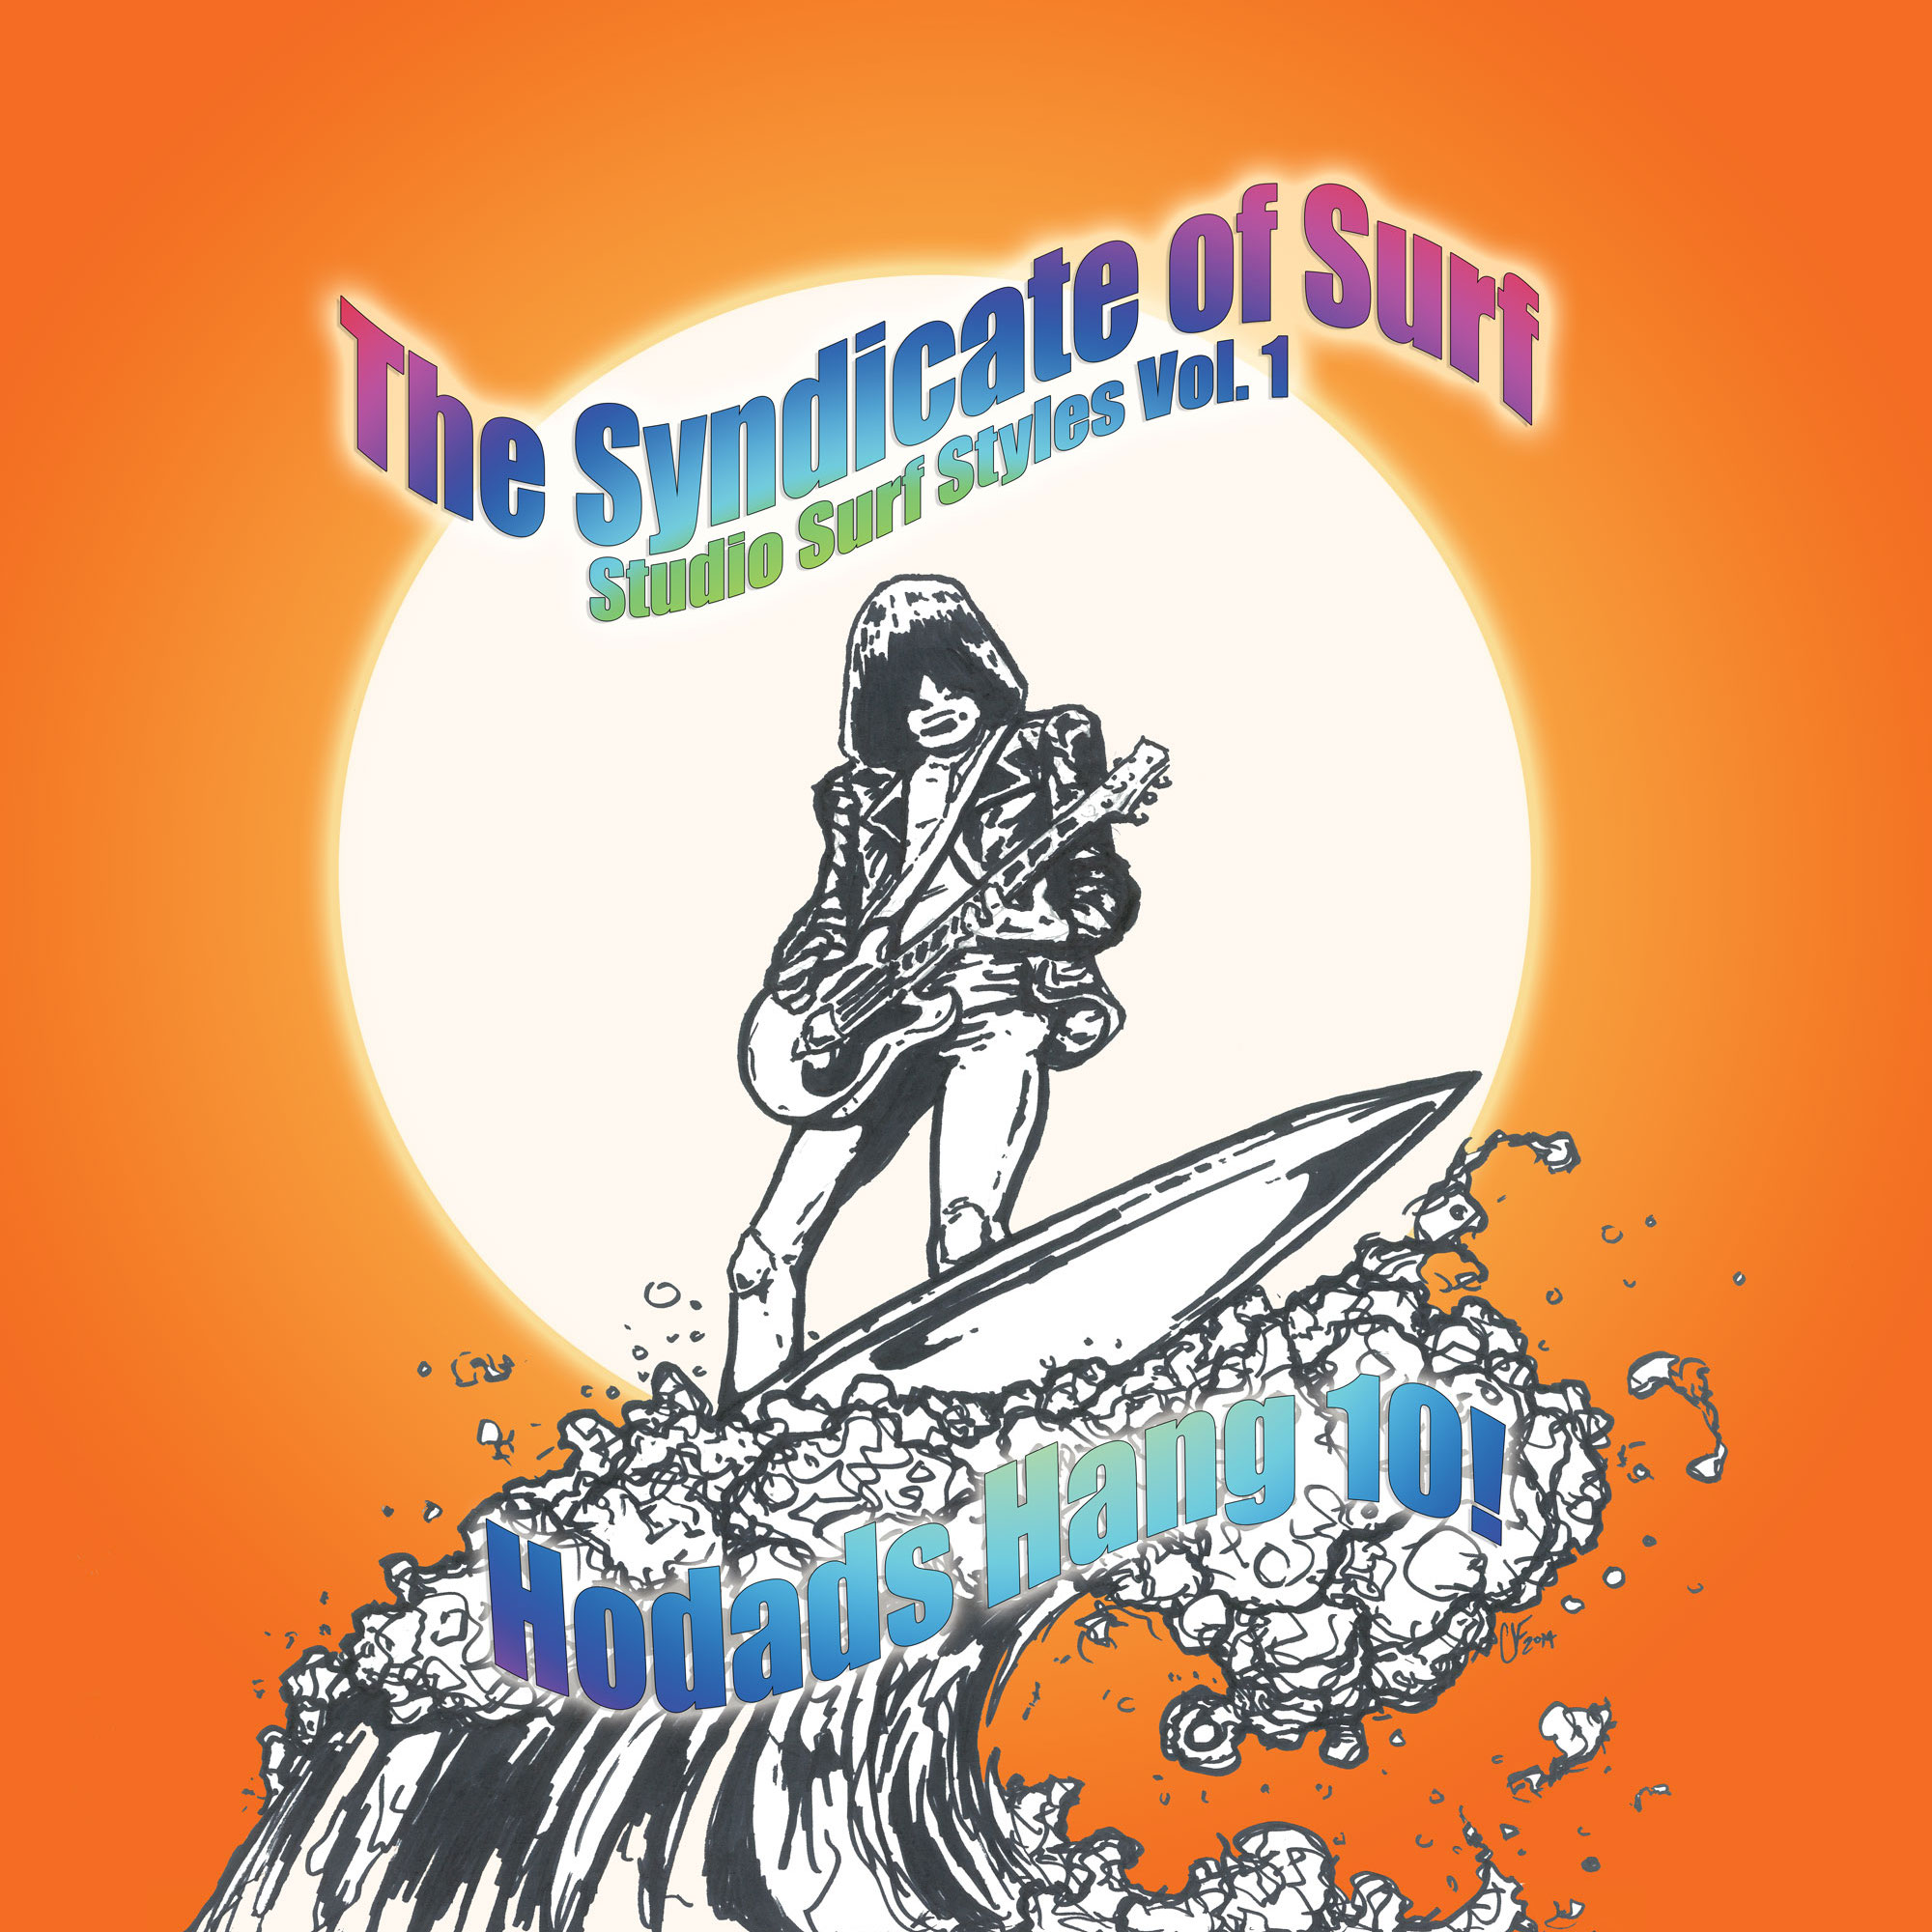 SRW008 The Syndicate of Surf - Studio Surf Styles Volume 1 Hodads Hang 10!